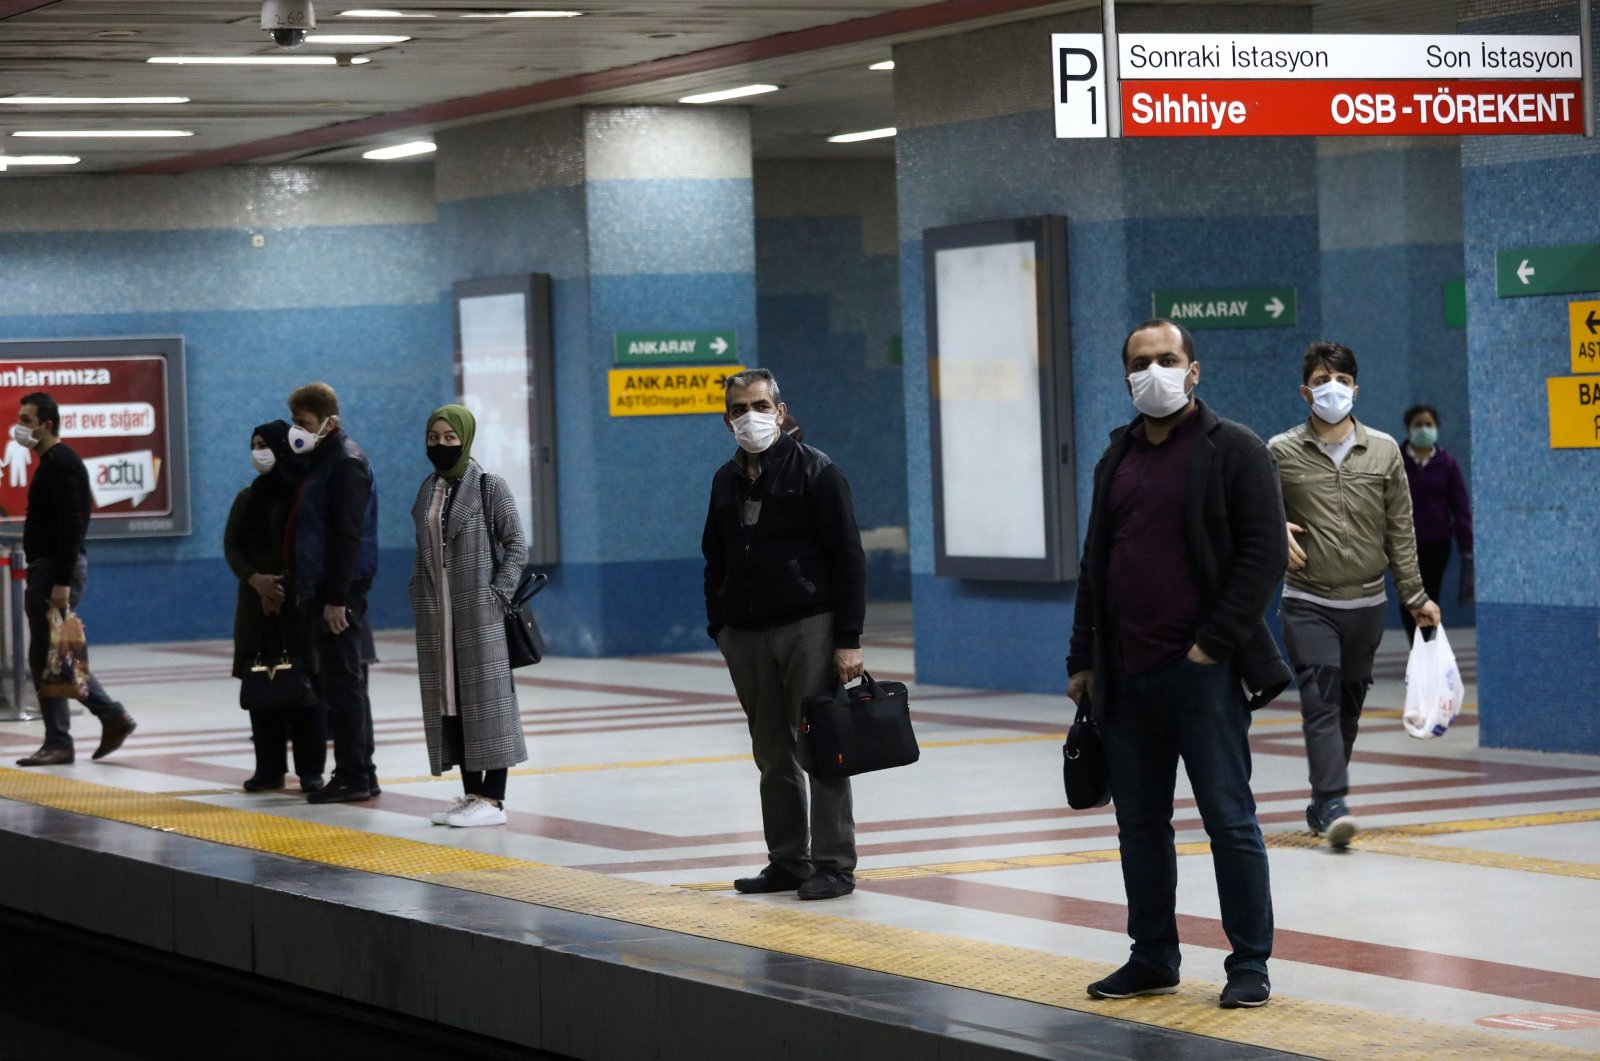 People wearing face masks for protection wait for the subway train on the platform in Ankara, Turkey, April 16, 2020. (AFP Photo)